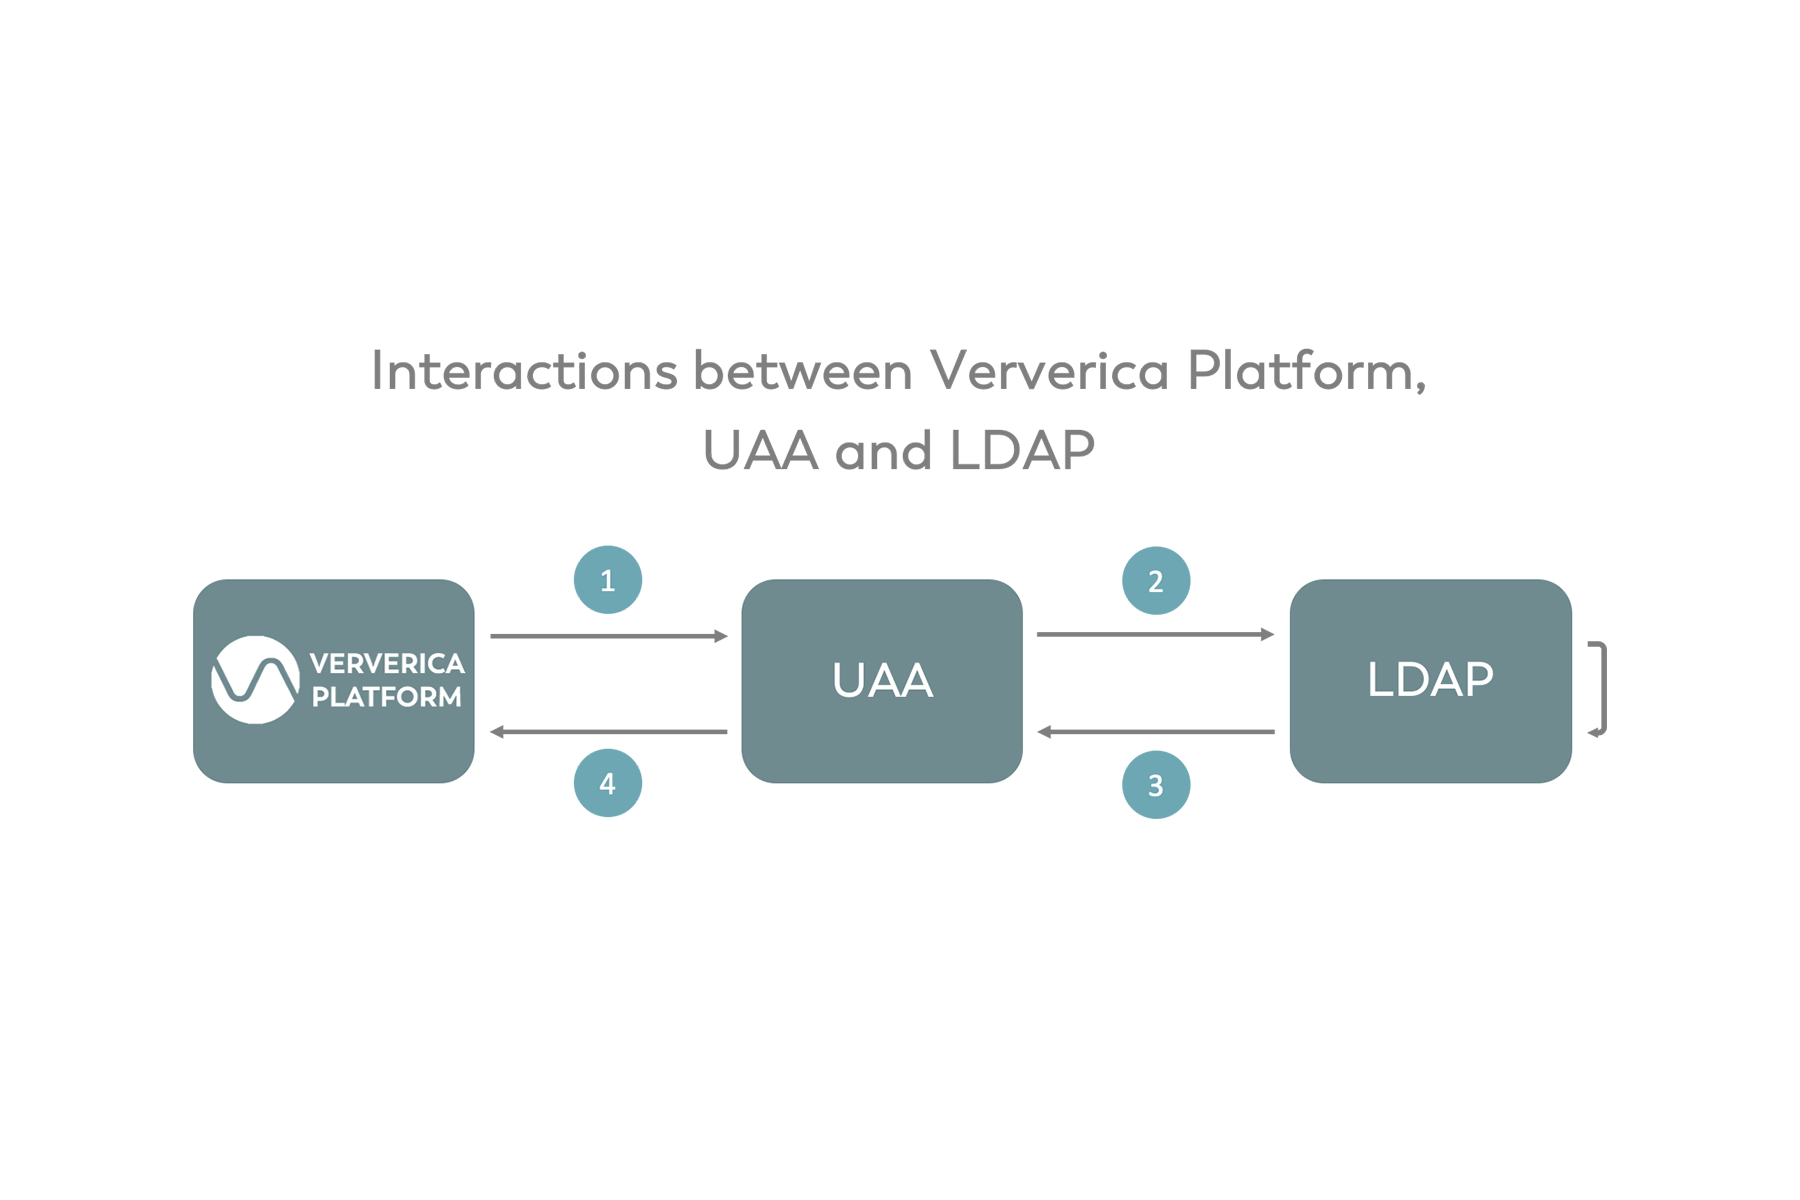 Setting up Role-based Access Control (RBAC) with UAA & LDAP in Ververica Platform